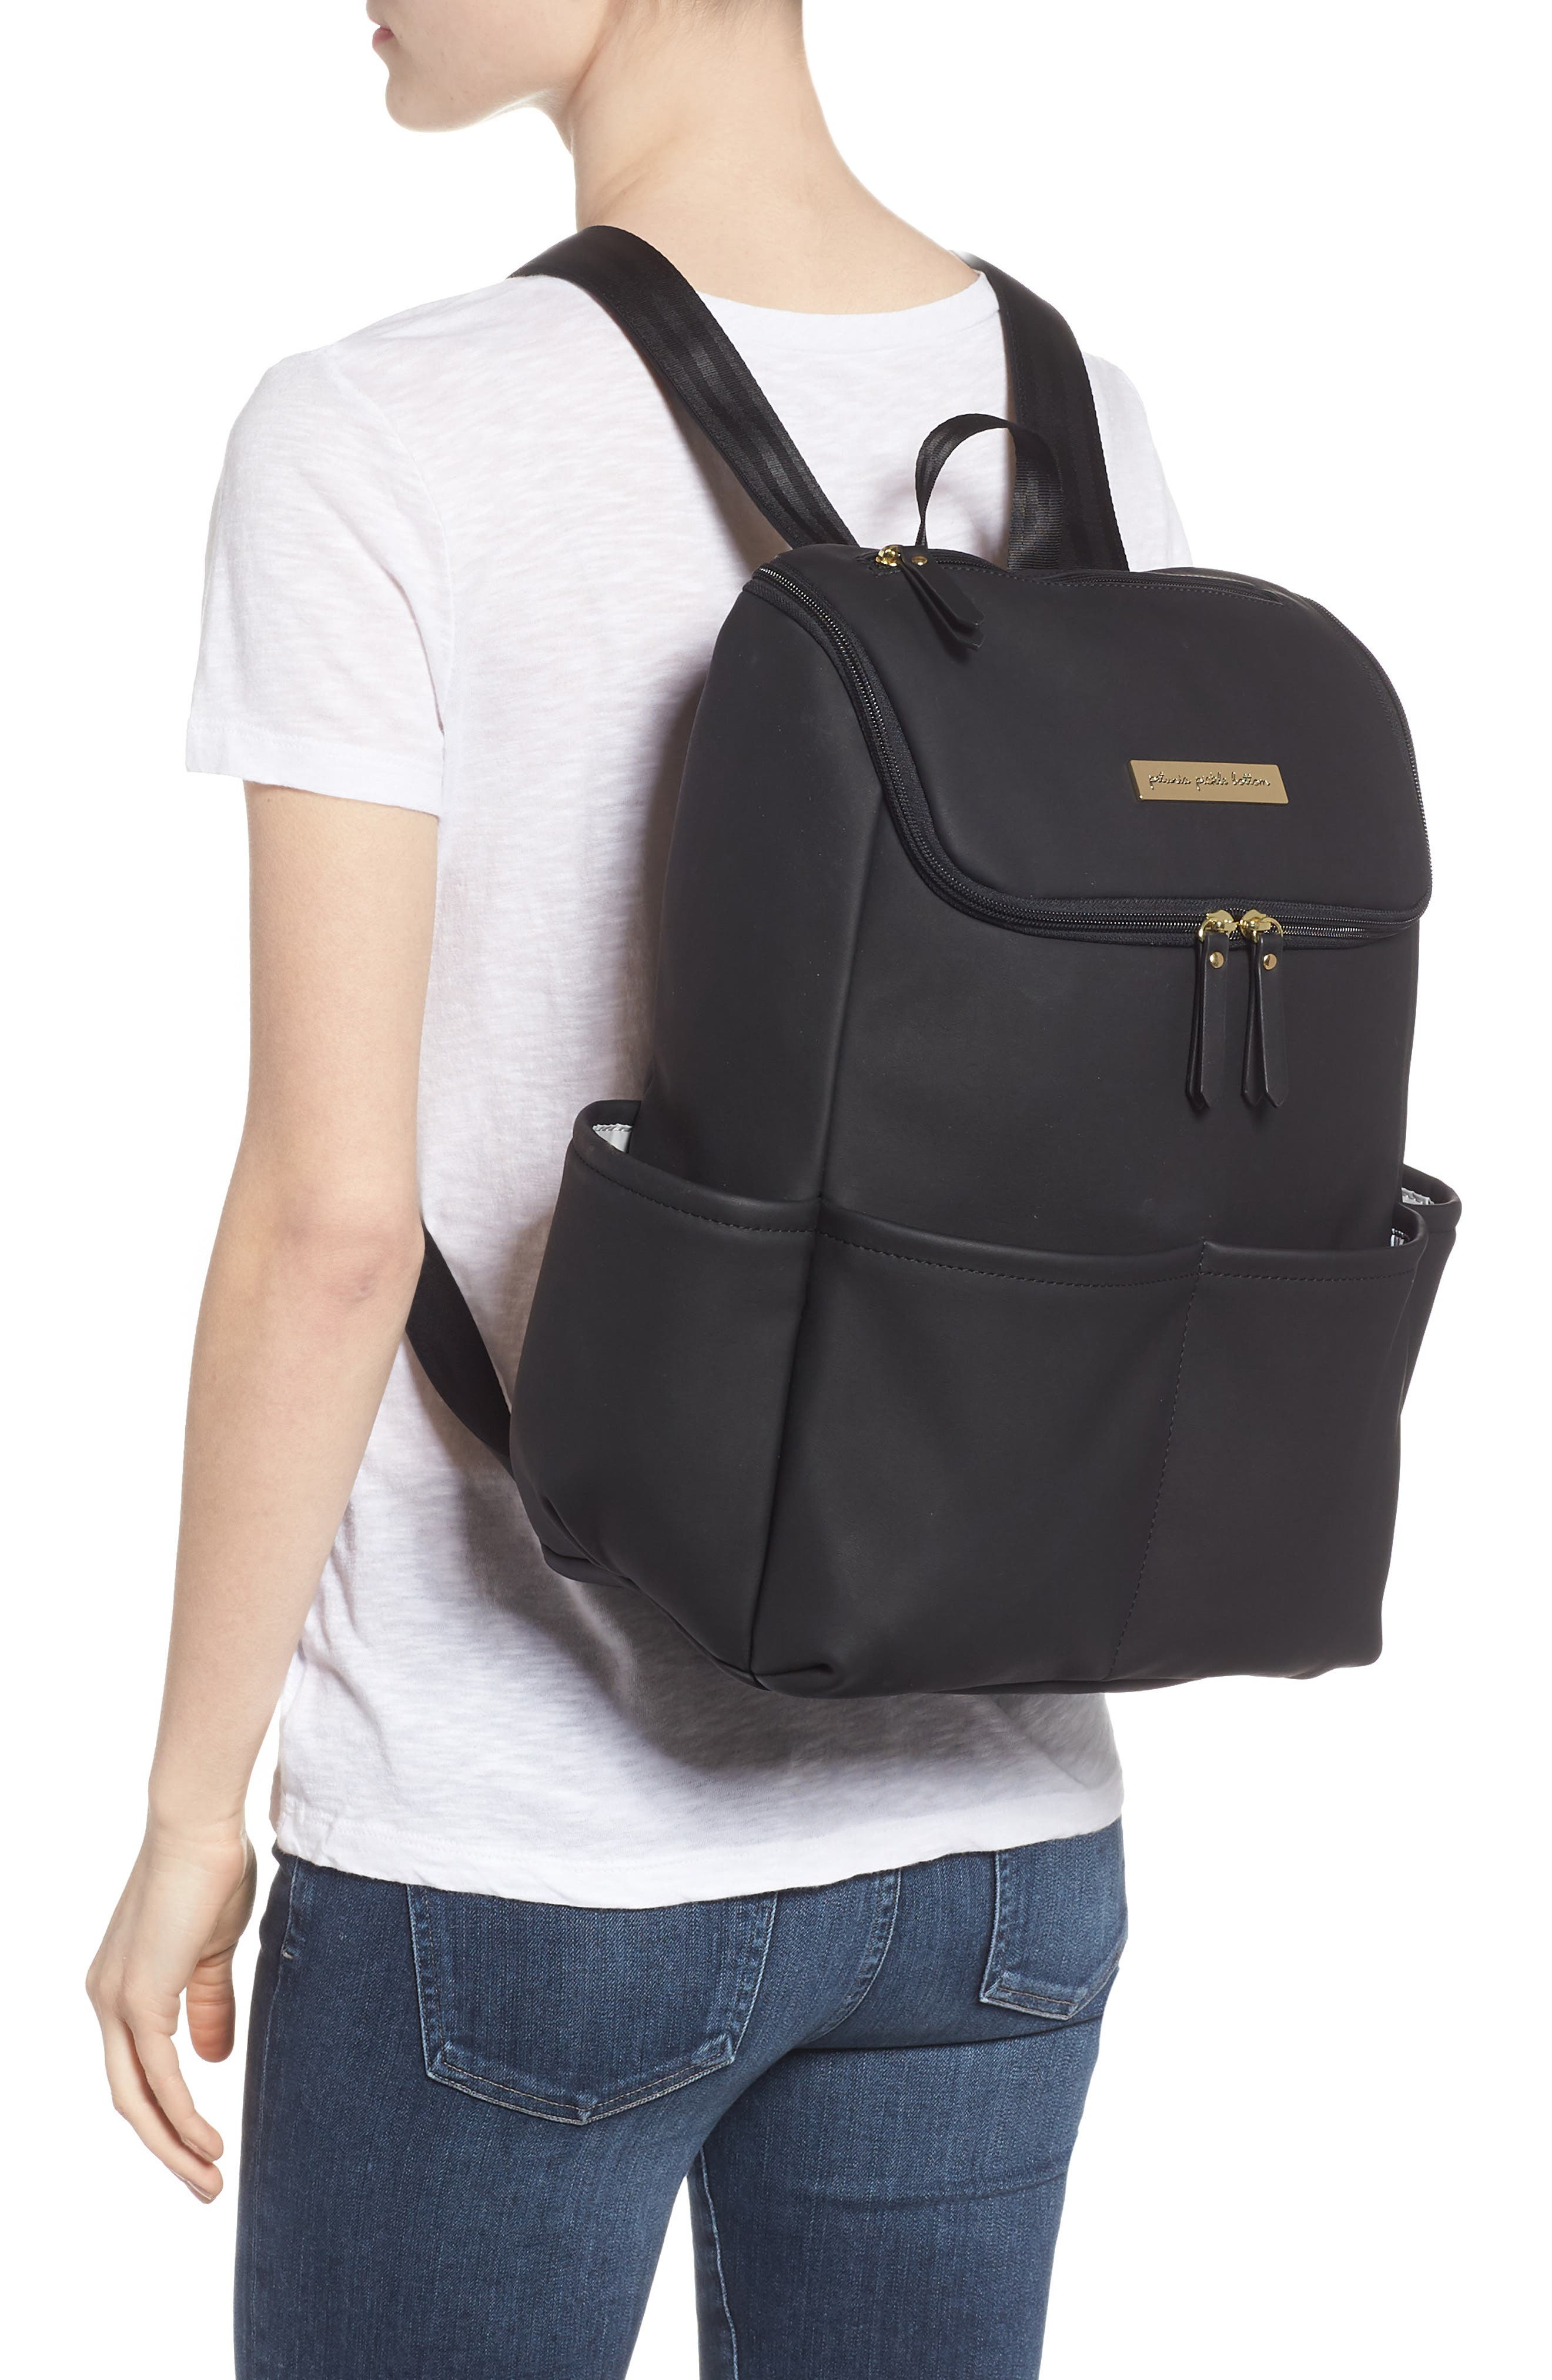 Method Diaper Backpack,                             Alternate thumbnail 2, color,                             BLACK MATTE LEATHERETTE